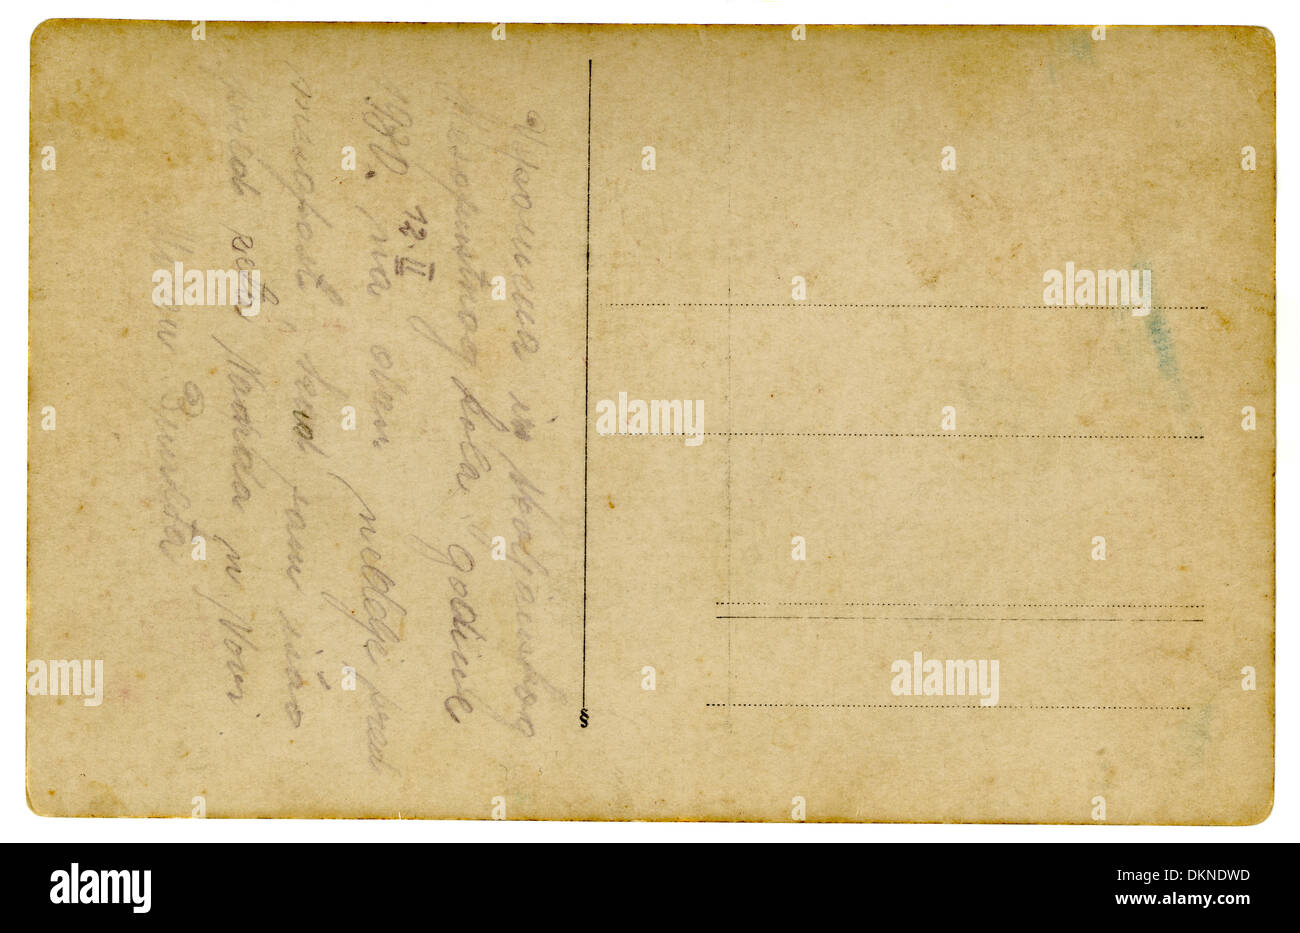 Vintage postcard with faded text. Isolated on white. - Stock Image